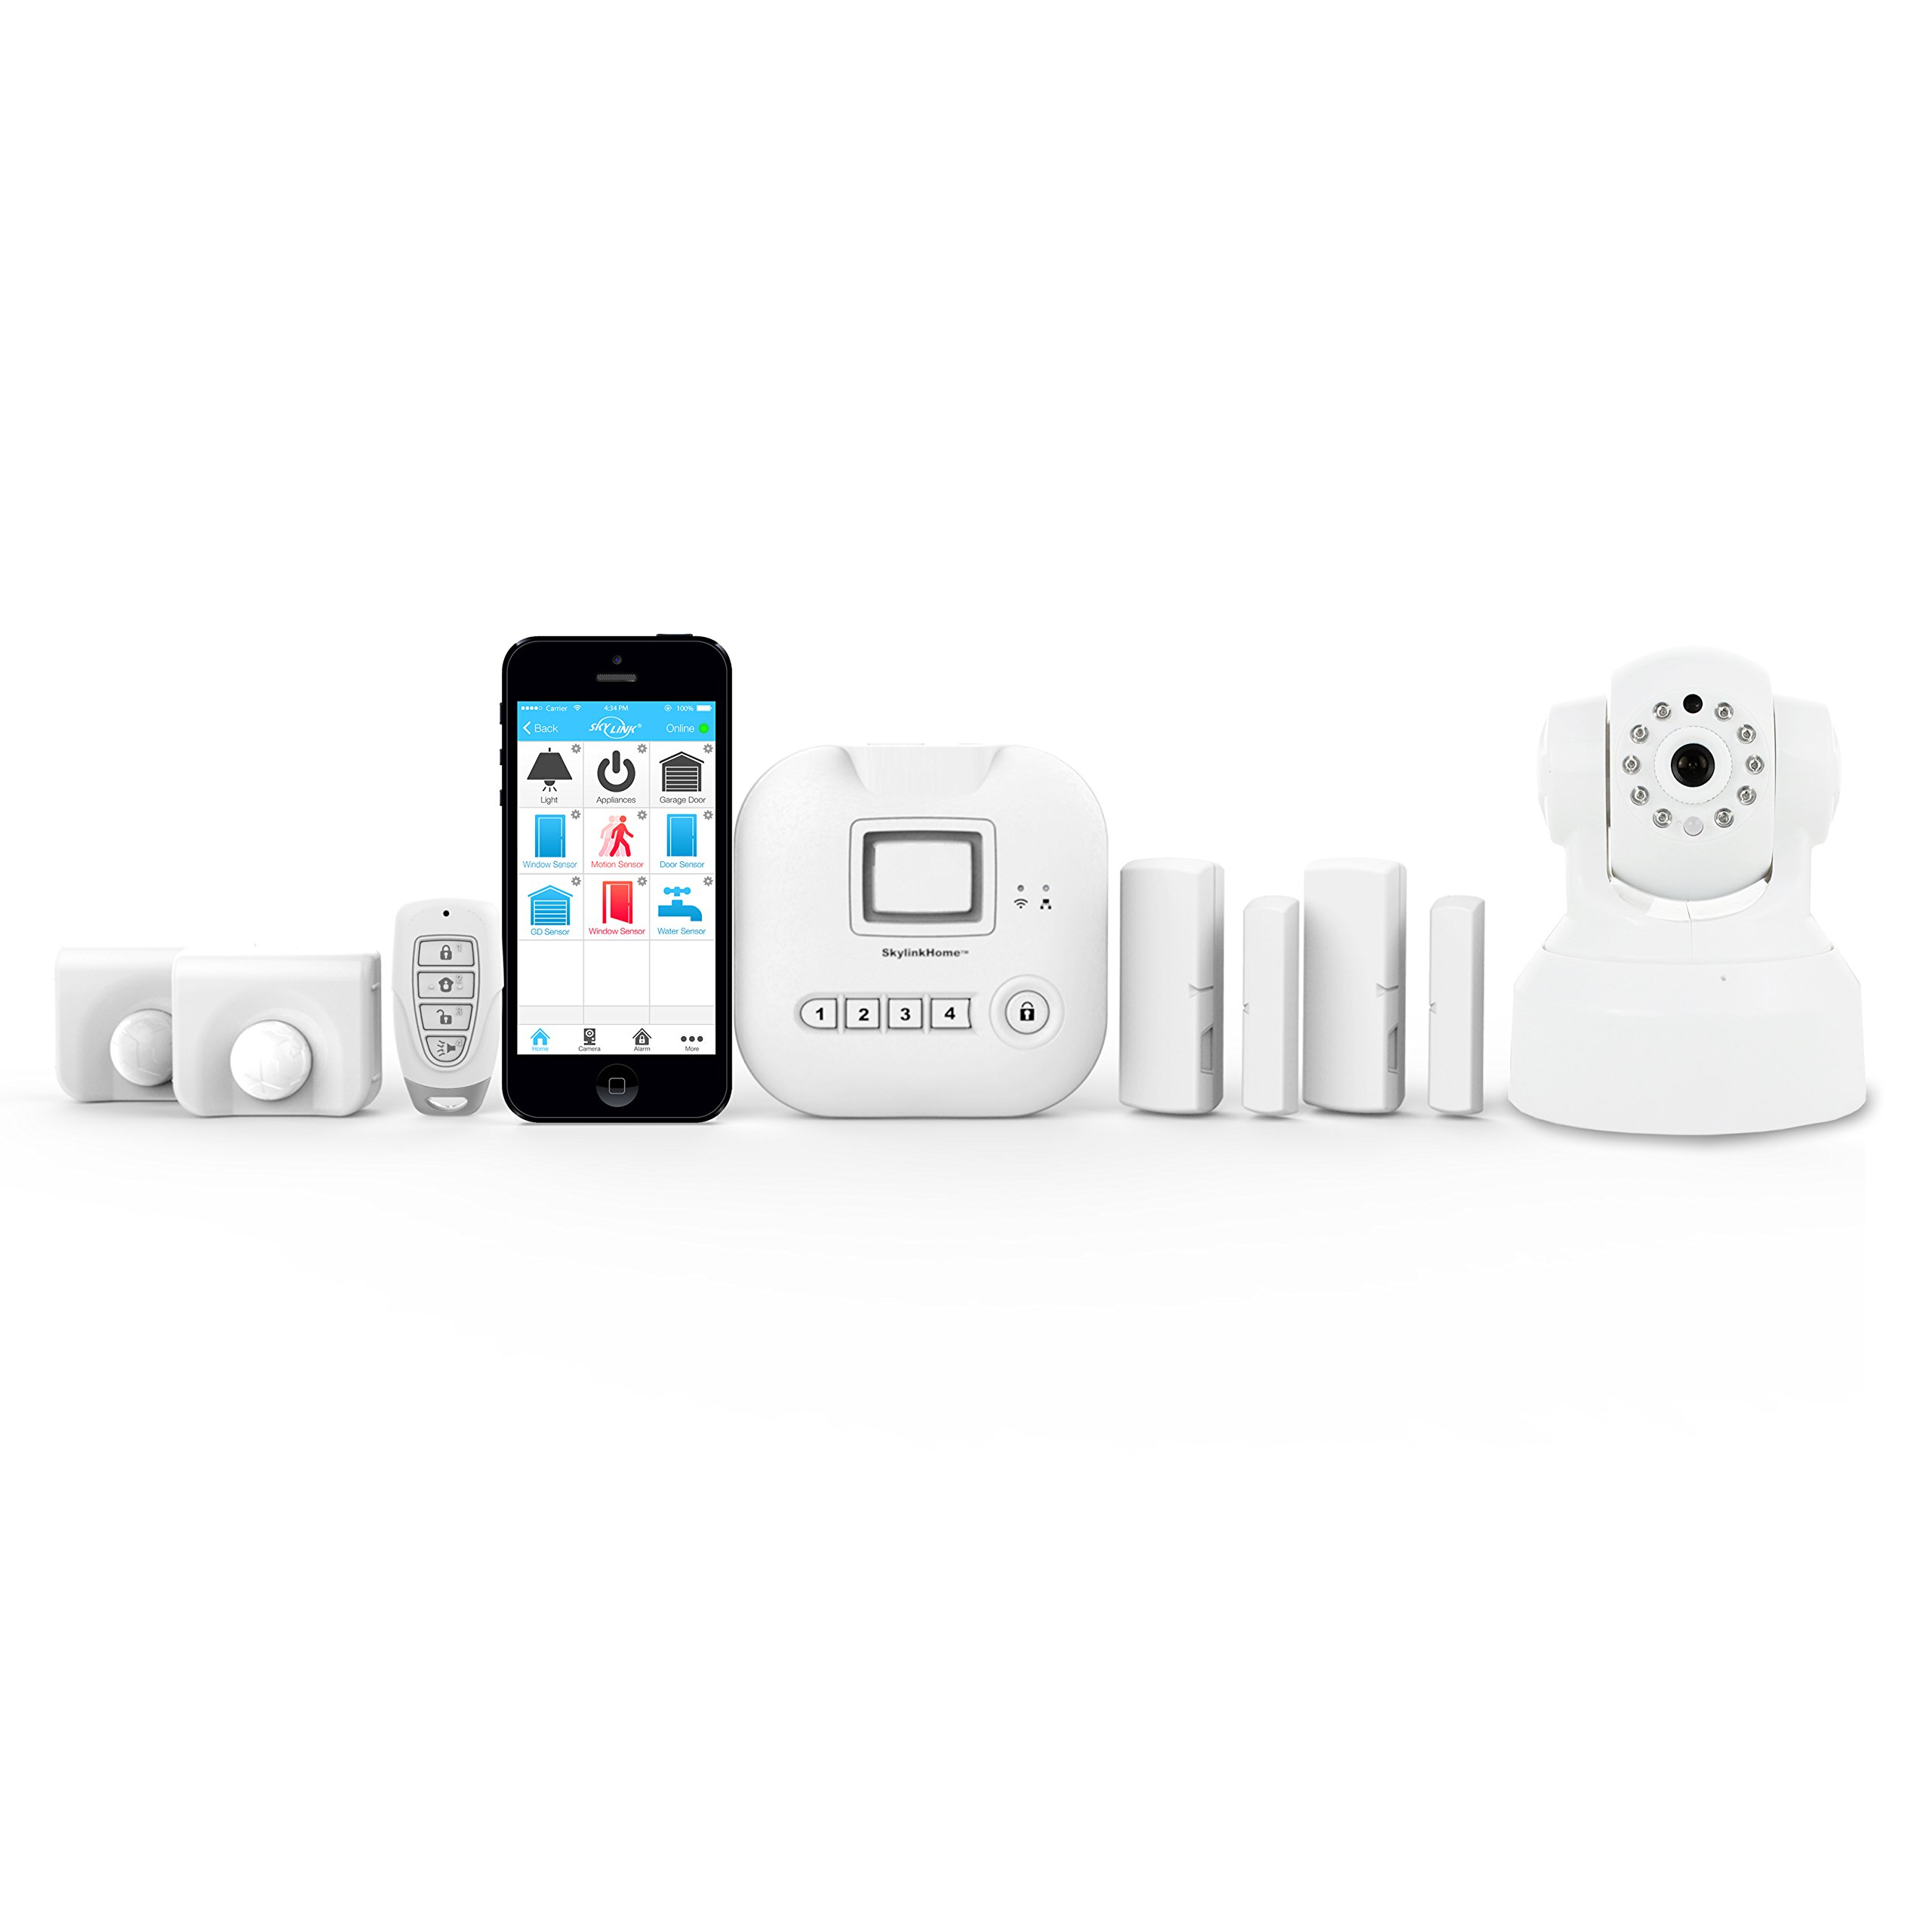 Skylink SK-250 Alarm Camera Deluxe Connected Wireless Security Home Automation System, Ios Iphone Android Smartphone, Echo Alexa and Ifttt Compatible with No Monthly Fees. , White by Skylink